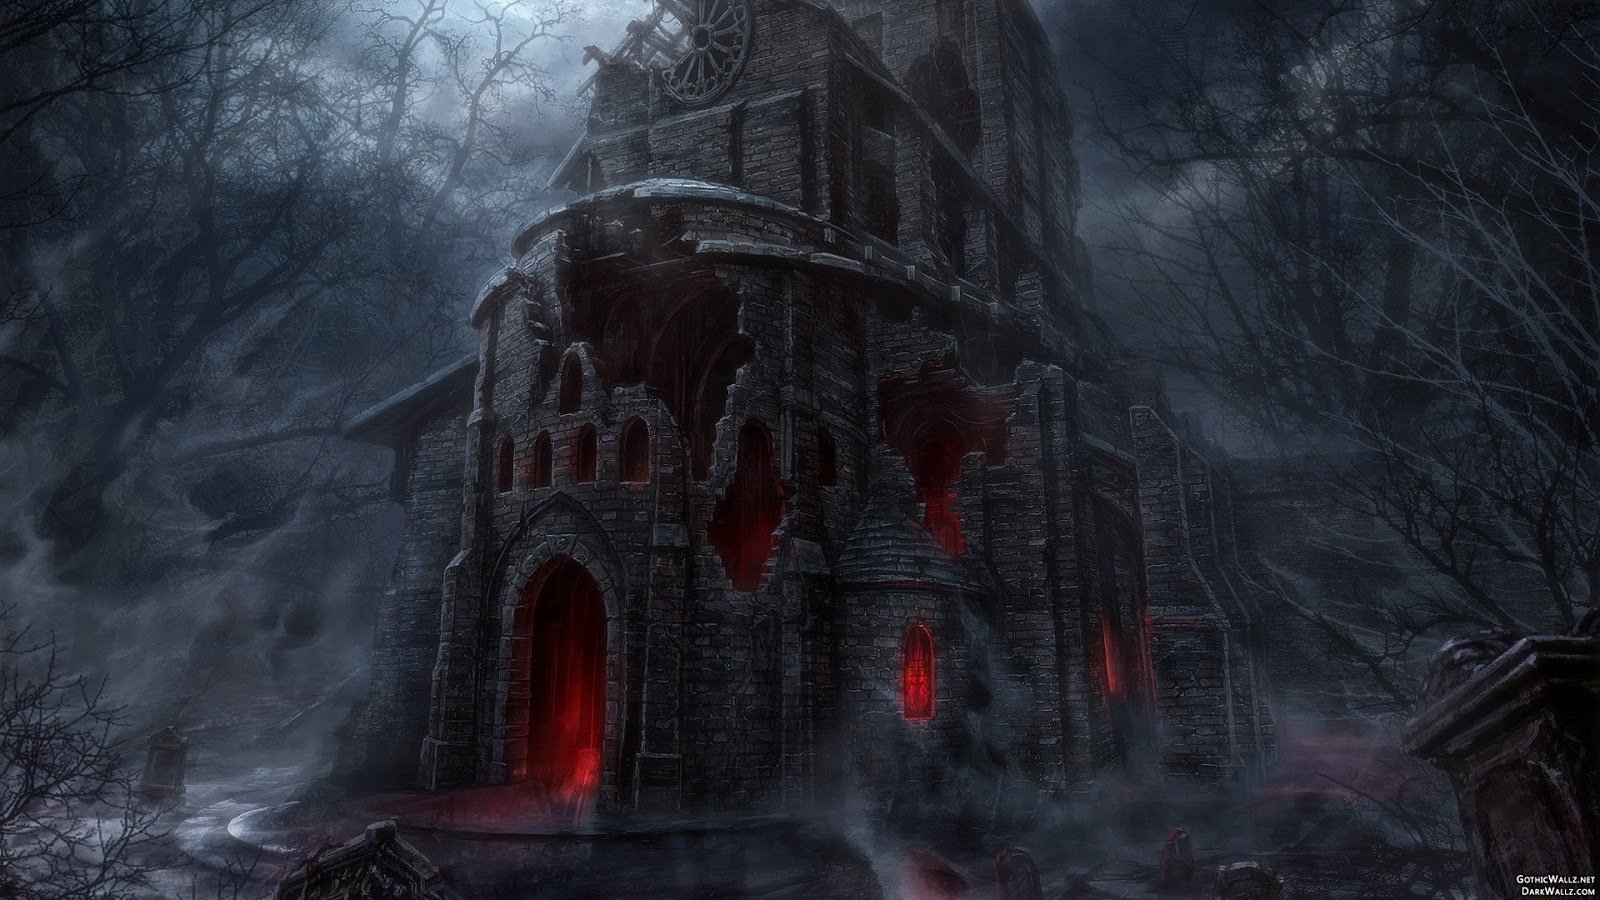 Halloween Scary Gothic House HD Desktop wallpaper images and photos 1600x900